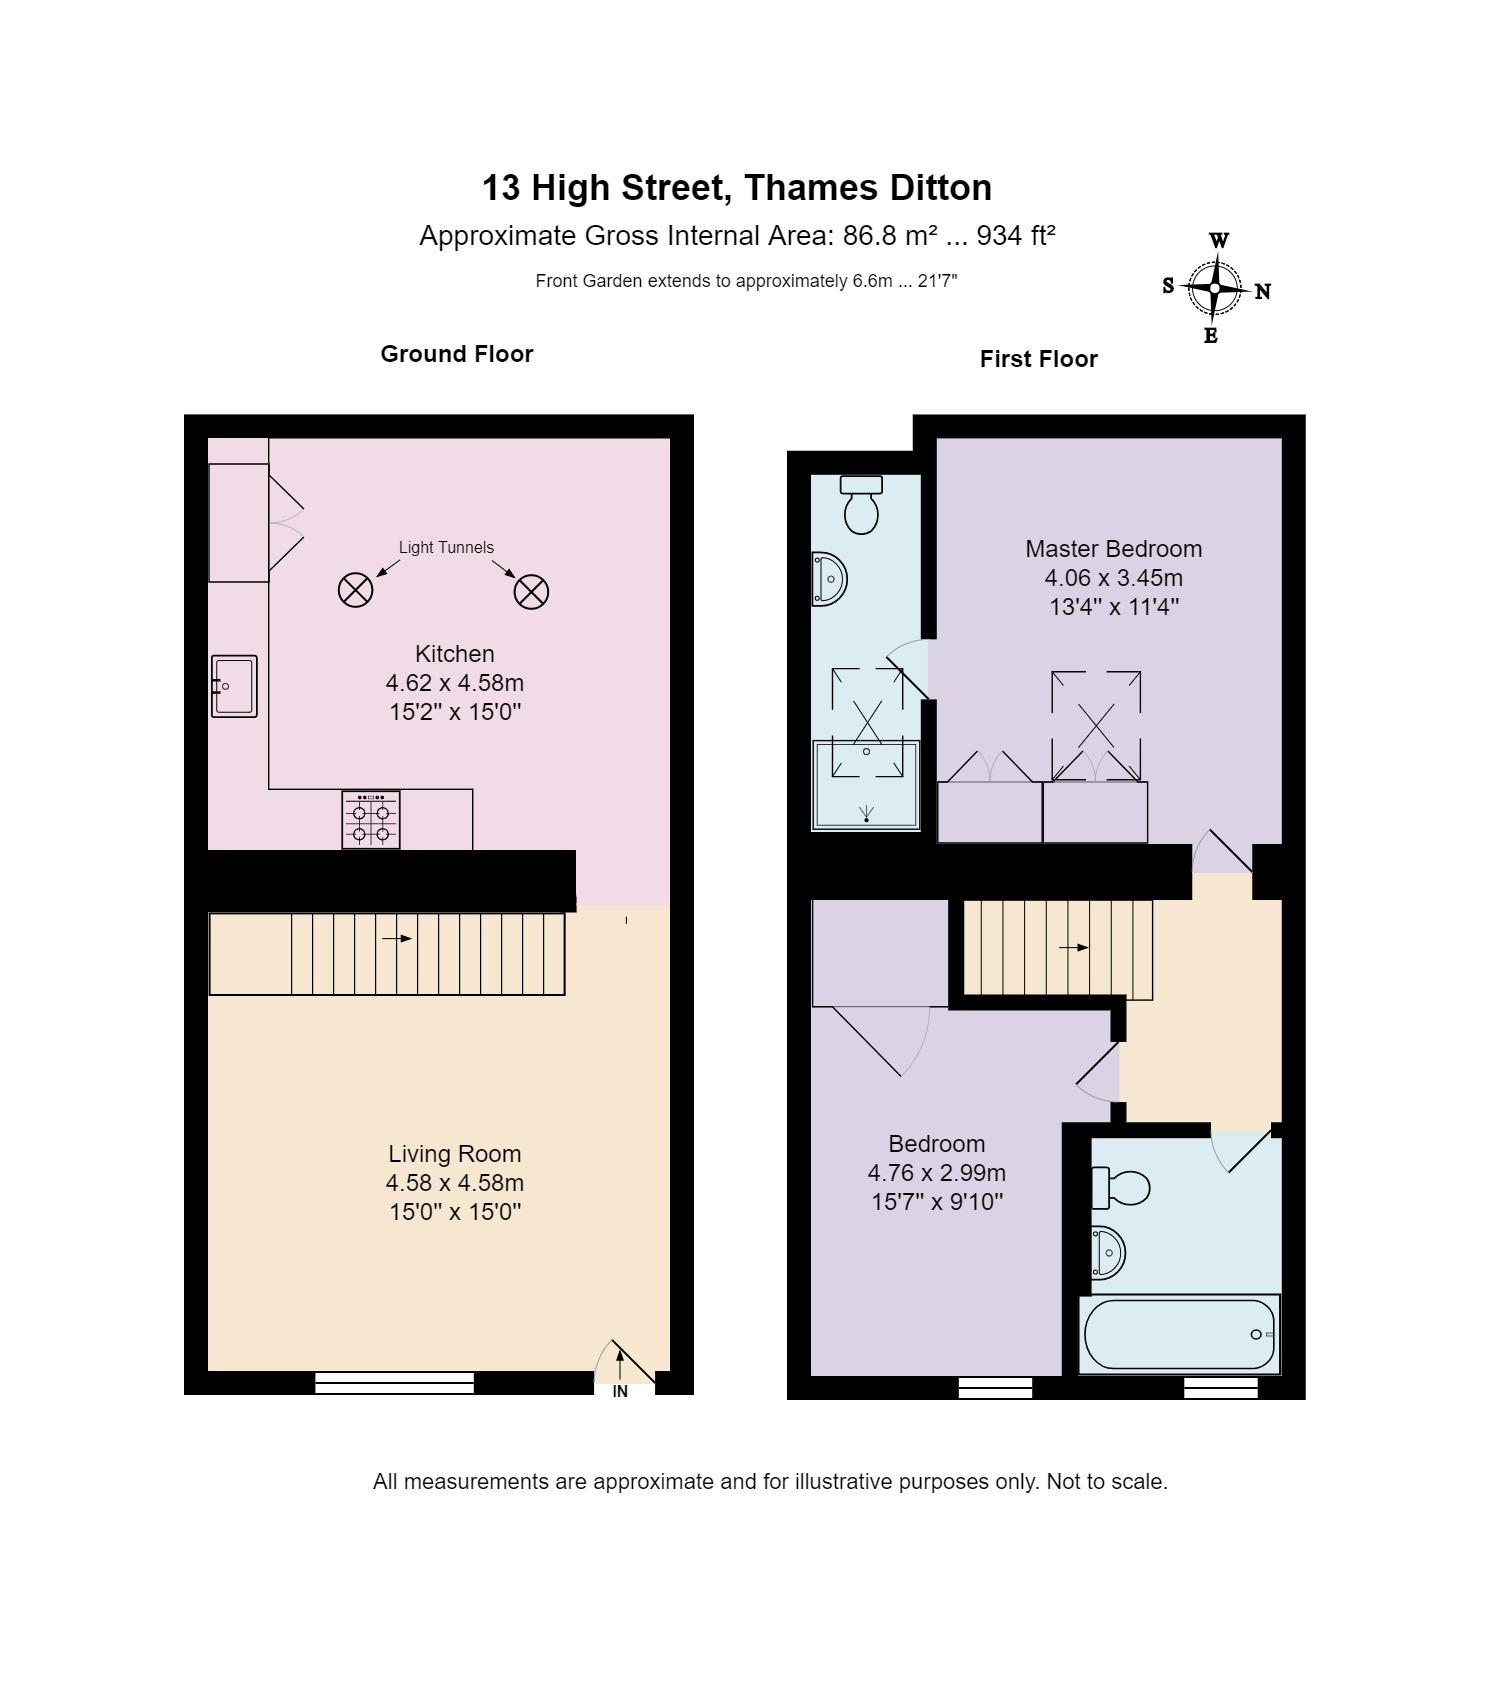 Property To Rent In Thames Ditton